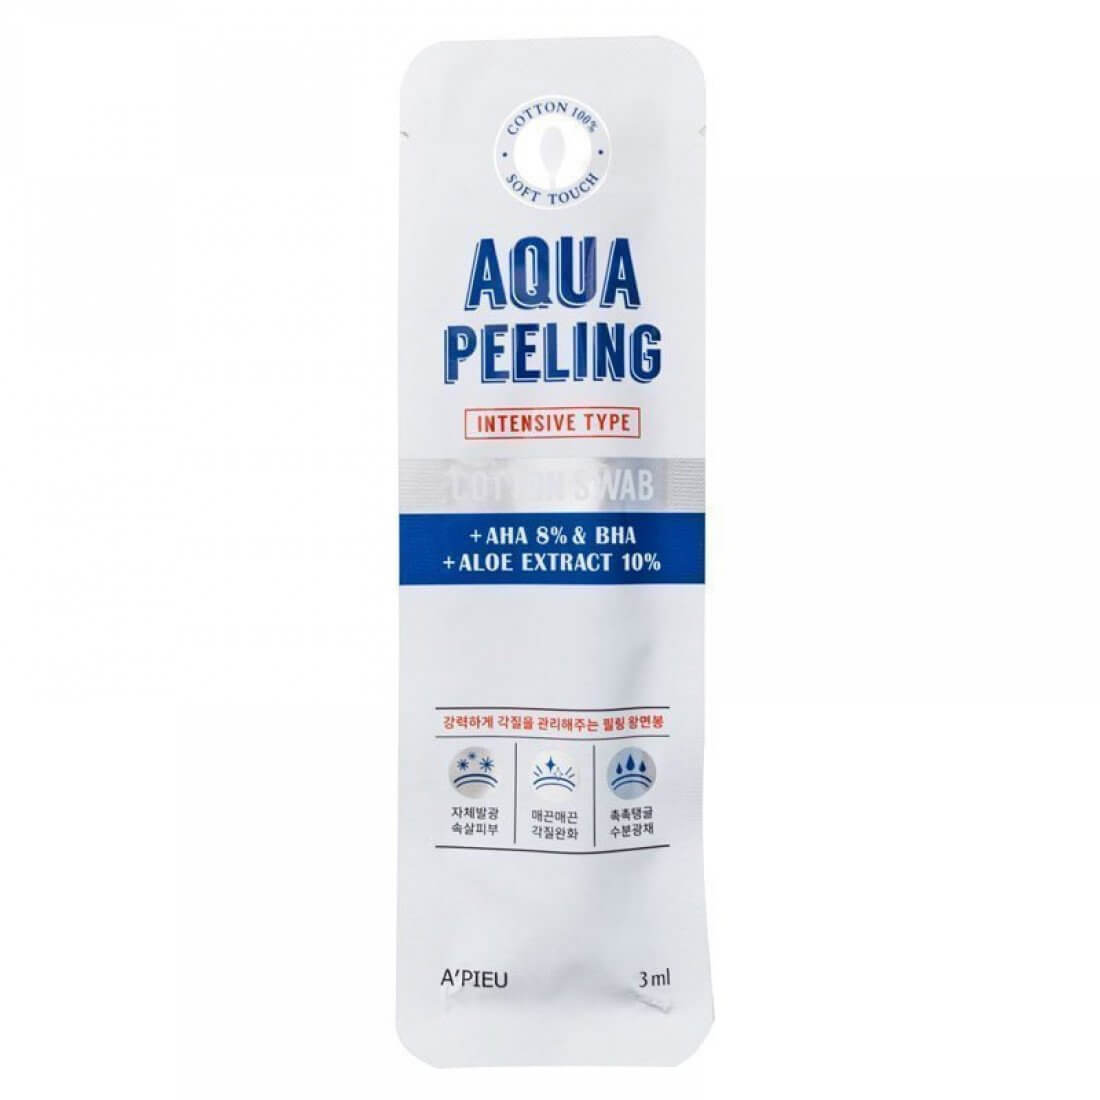 Apieu Aqua Peeling Cotton Swab Intensive Type